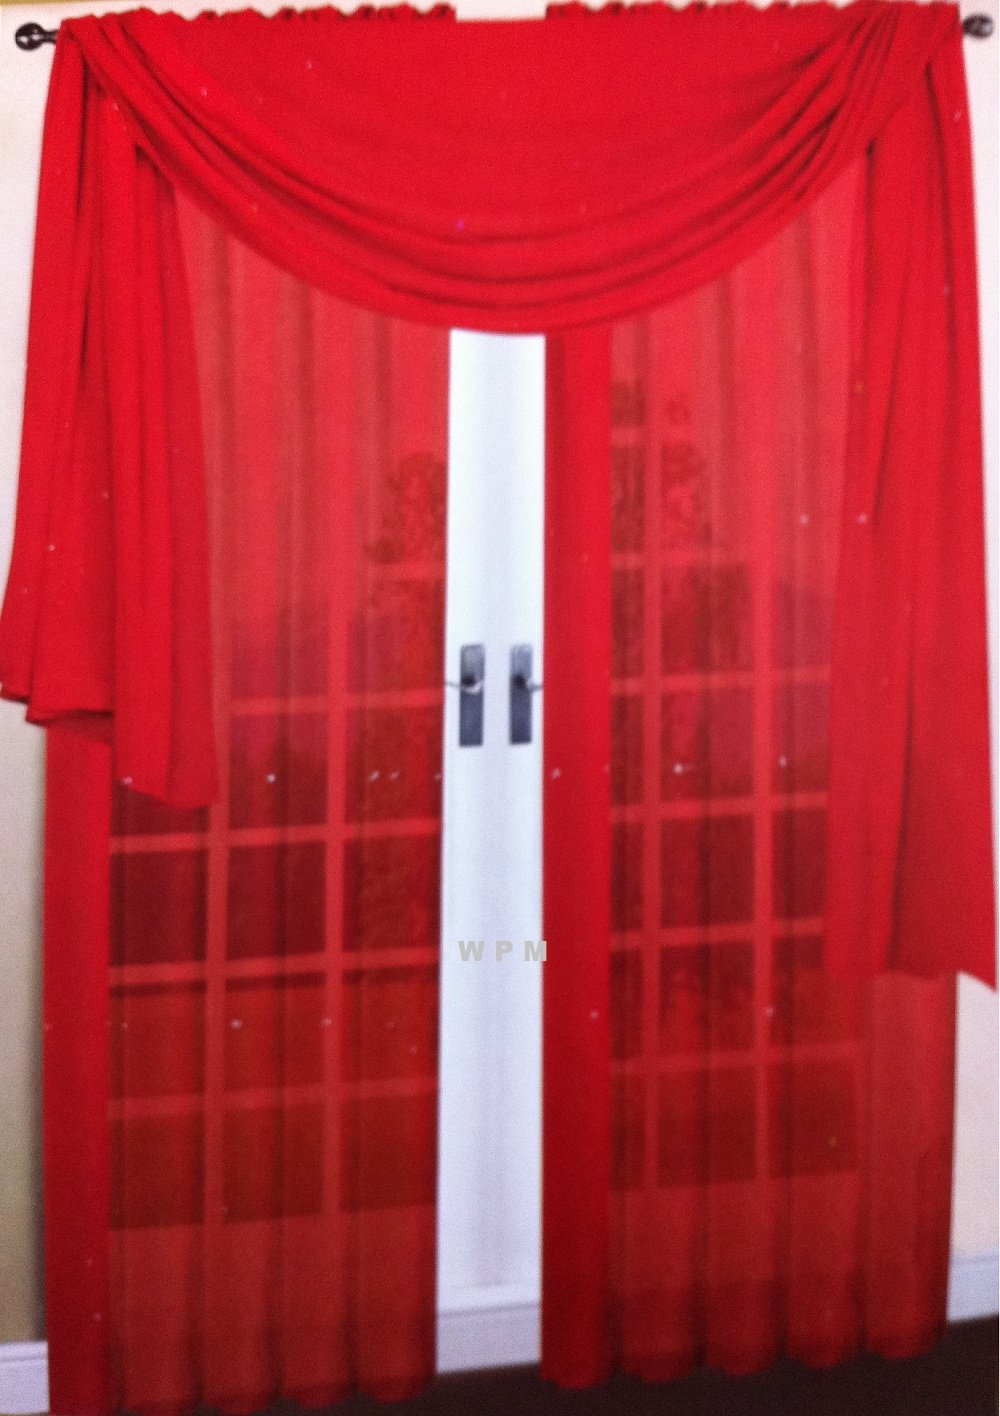 Amazon 3 Piece Red Sheer Voile Curtain Panel Set 2 Panels And 1 Scarf Home Kitchen